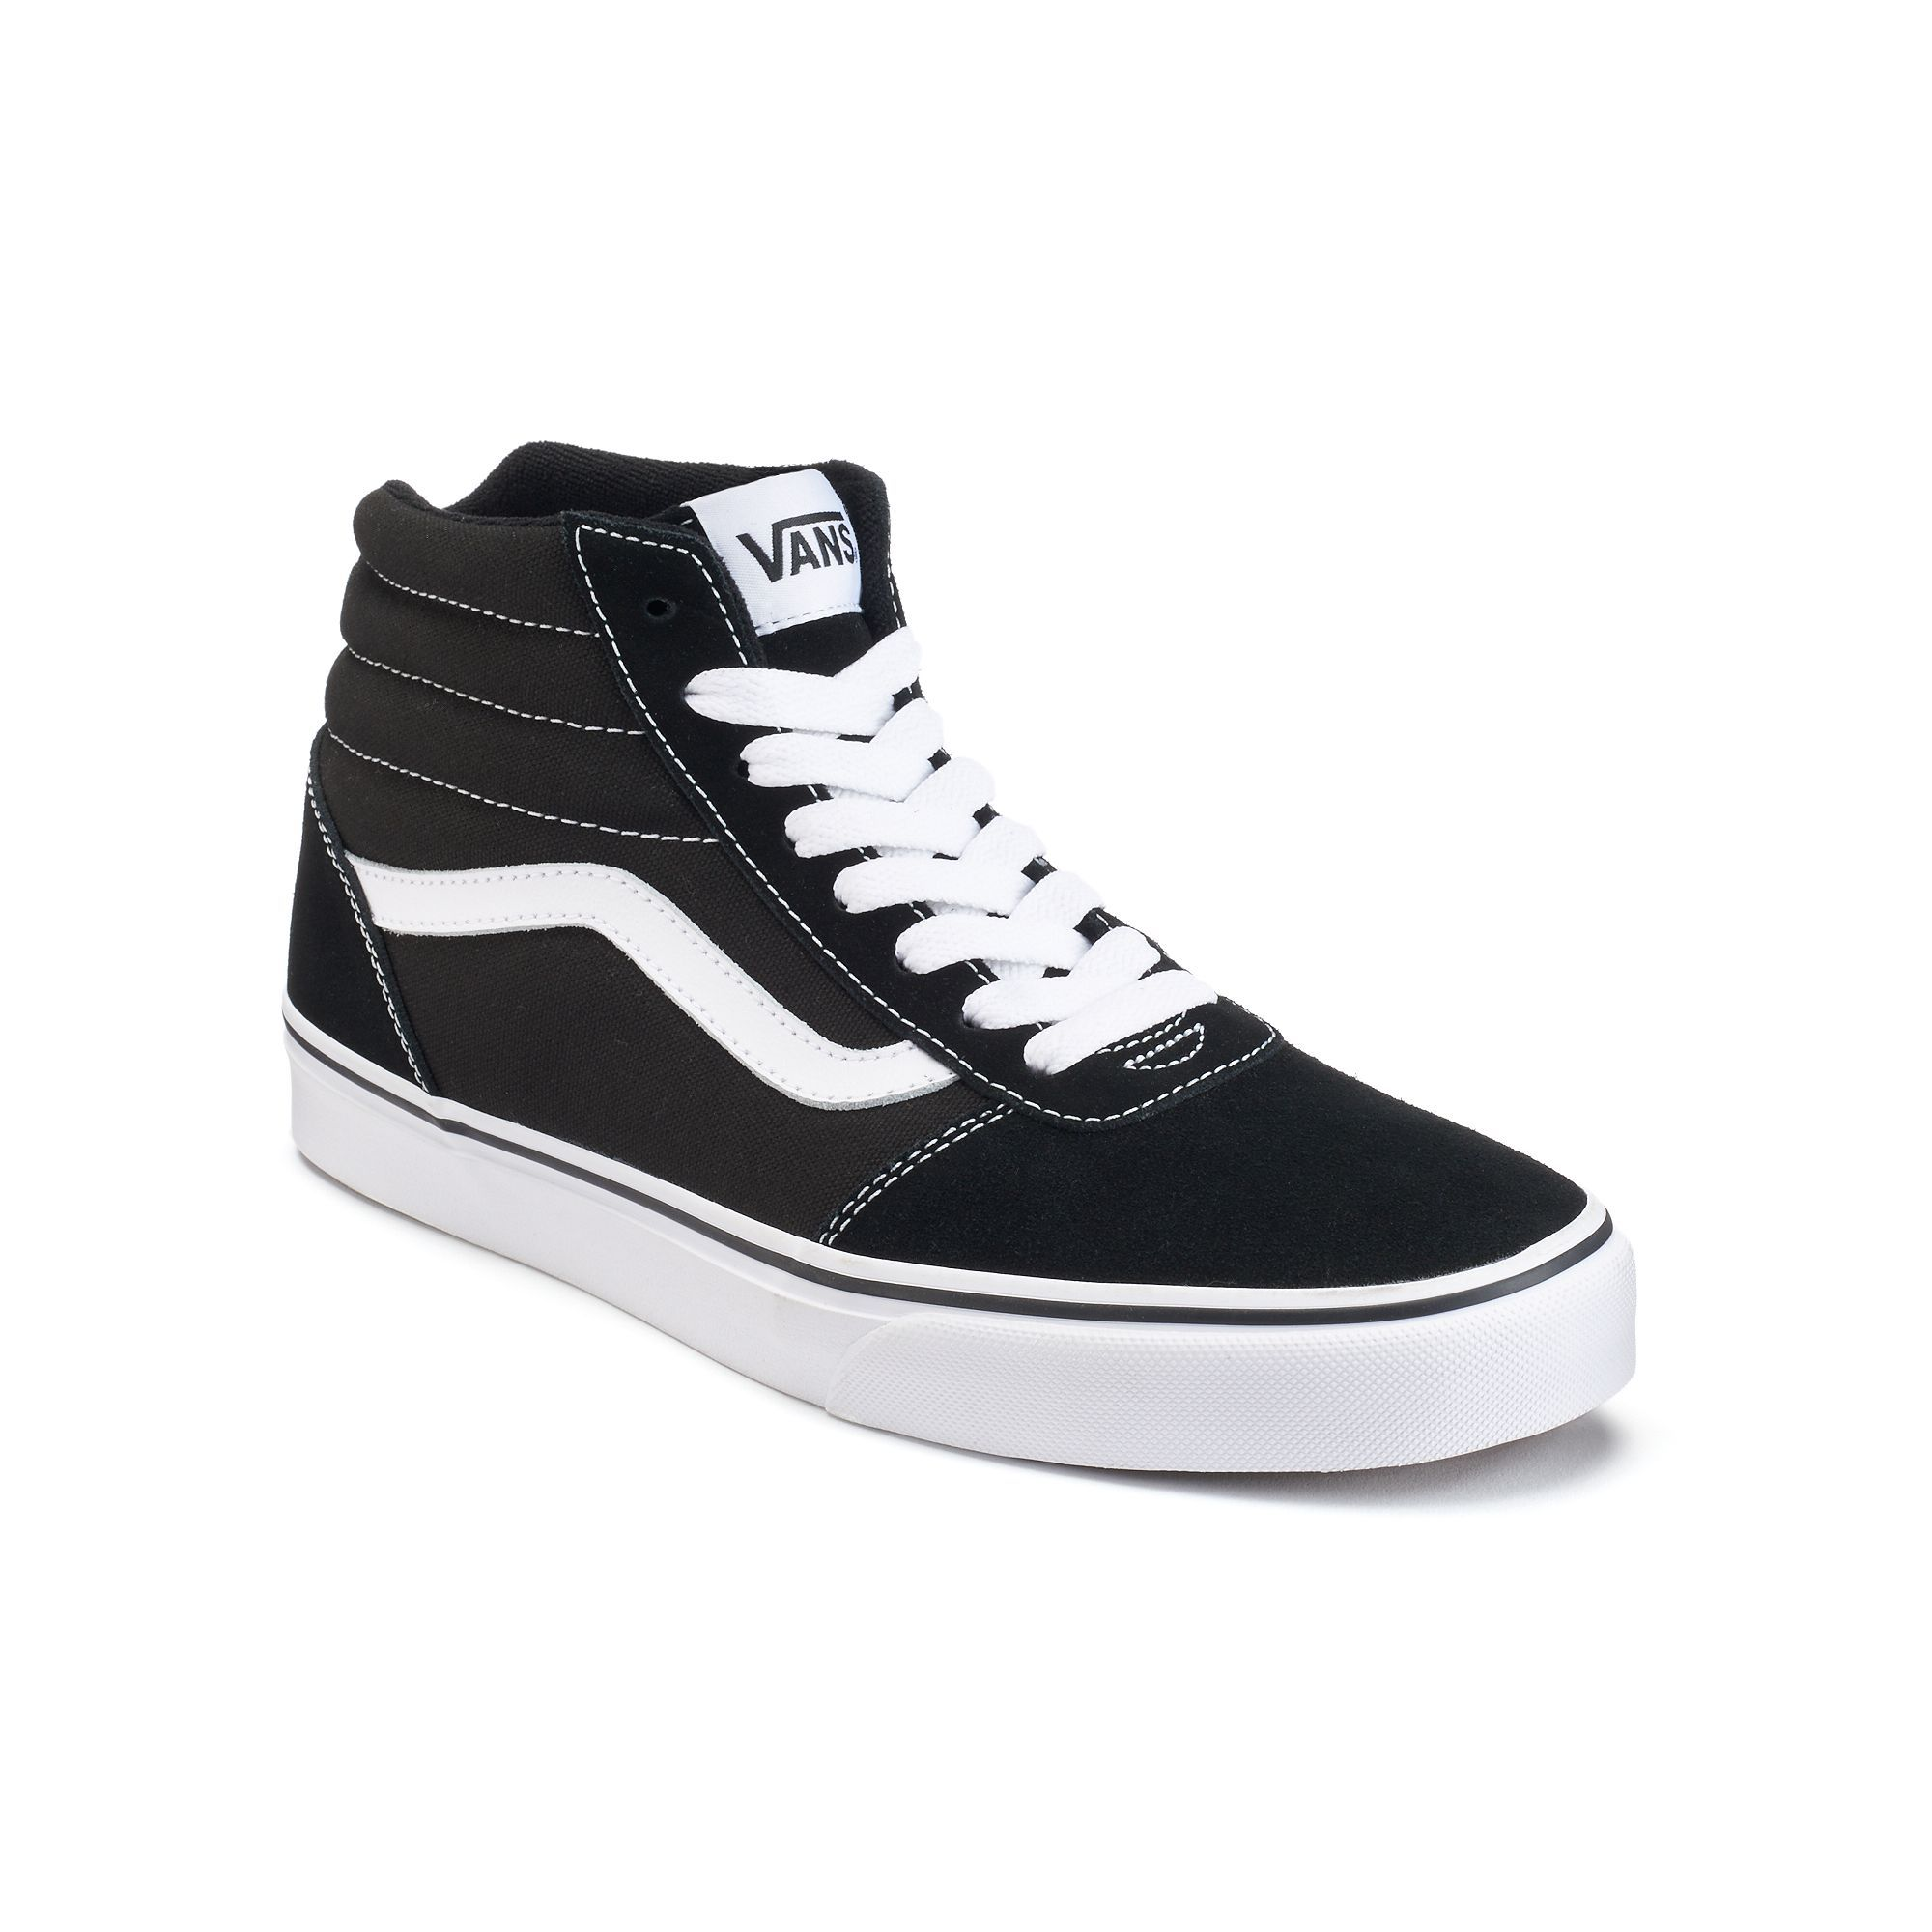 55099fc6a9dd Vans Ward Hi Men s Suede Skate Shoes